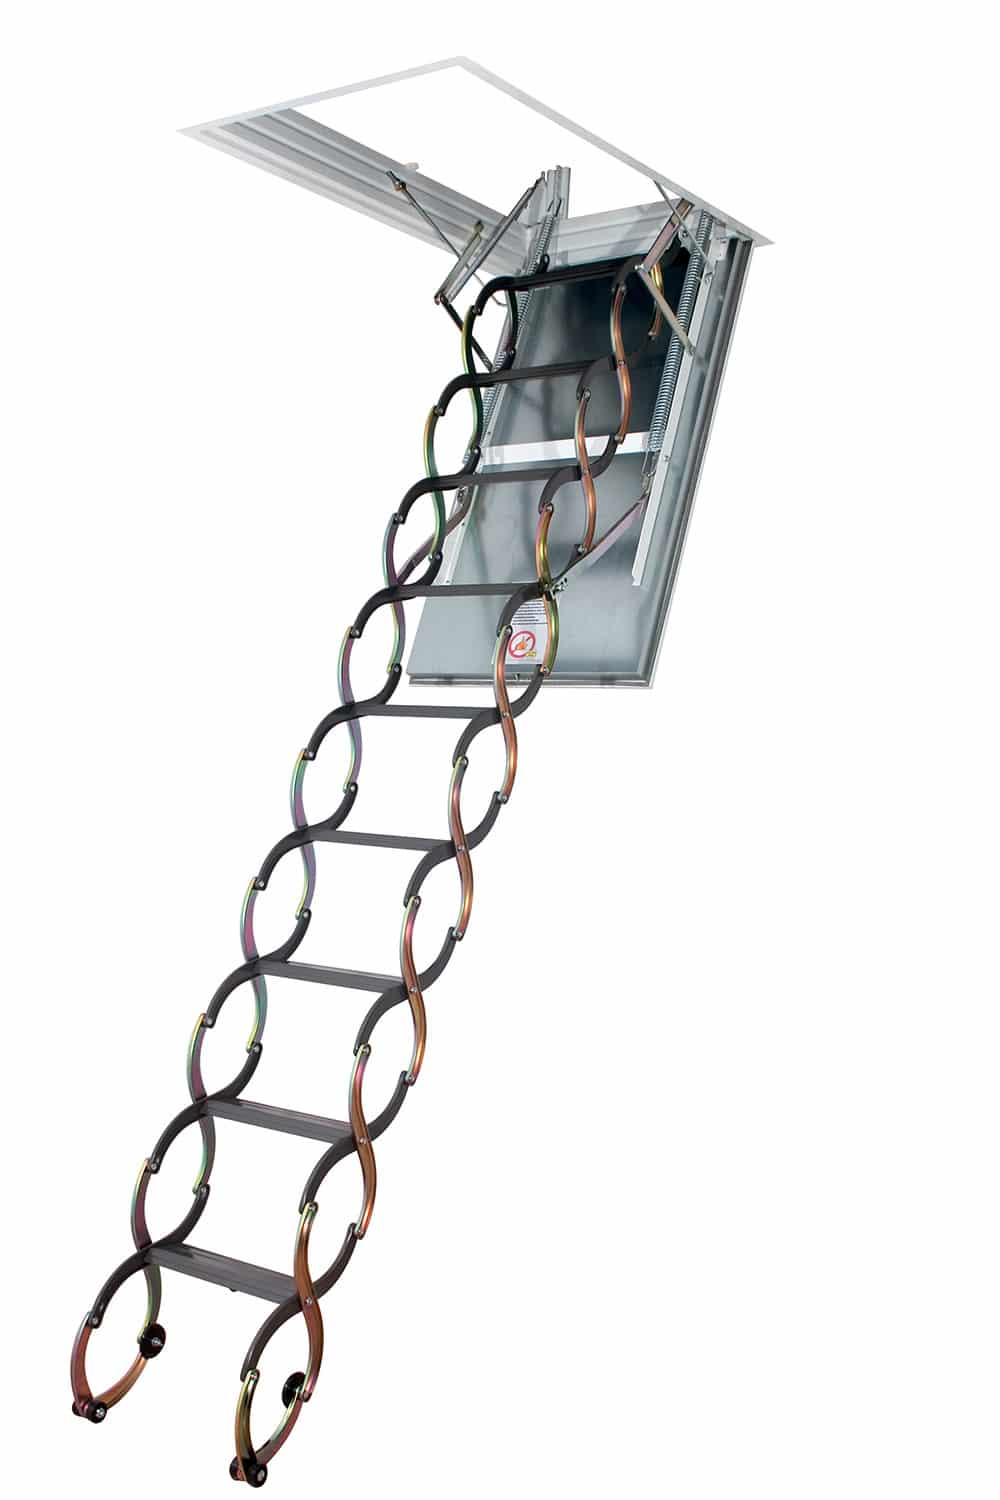 Fire Rated Attic Ladder 25 Reasons You Need One Fakrousa Com